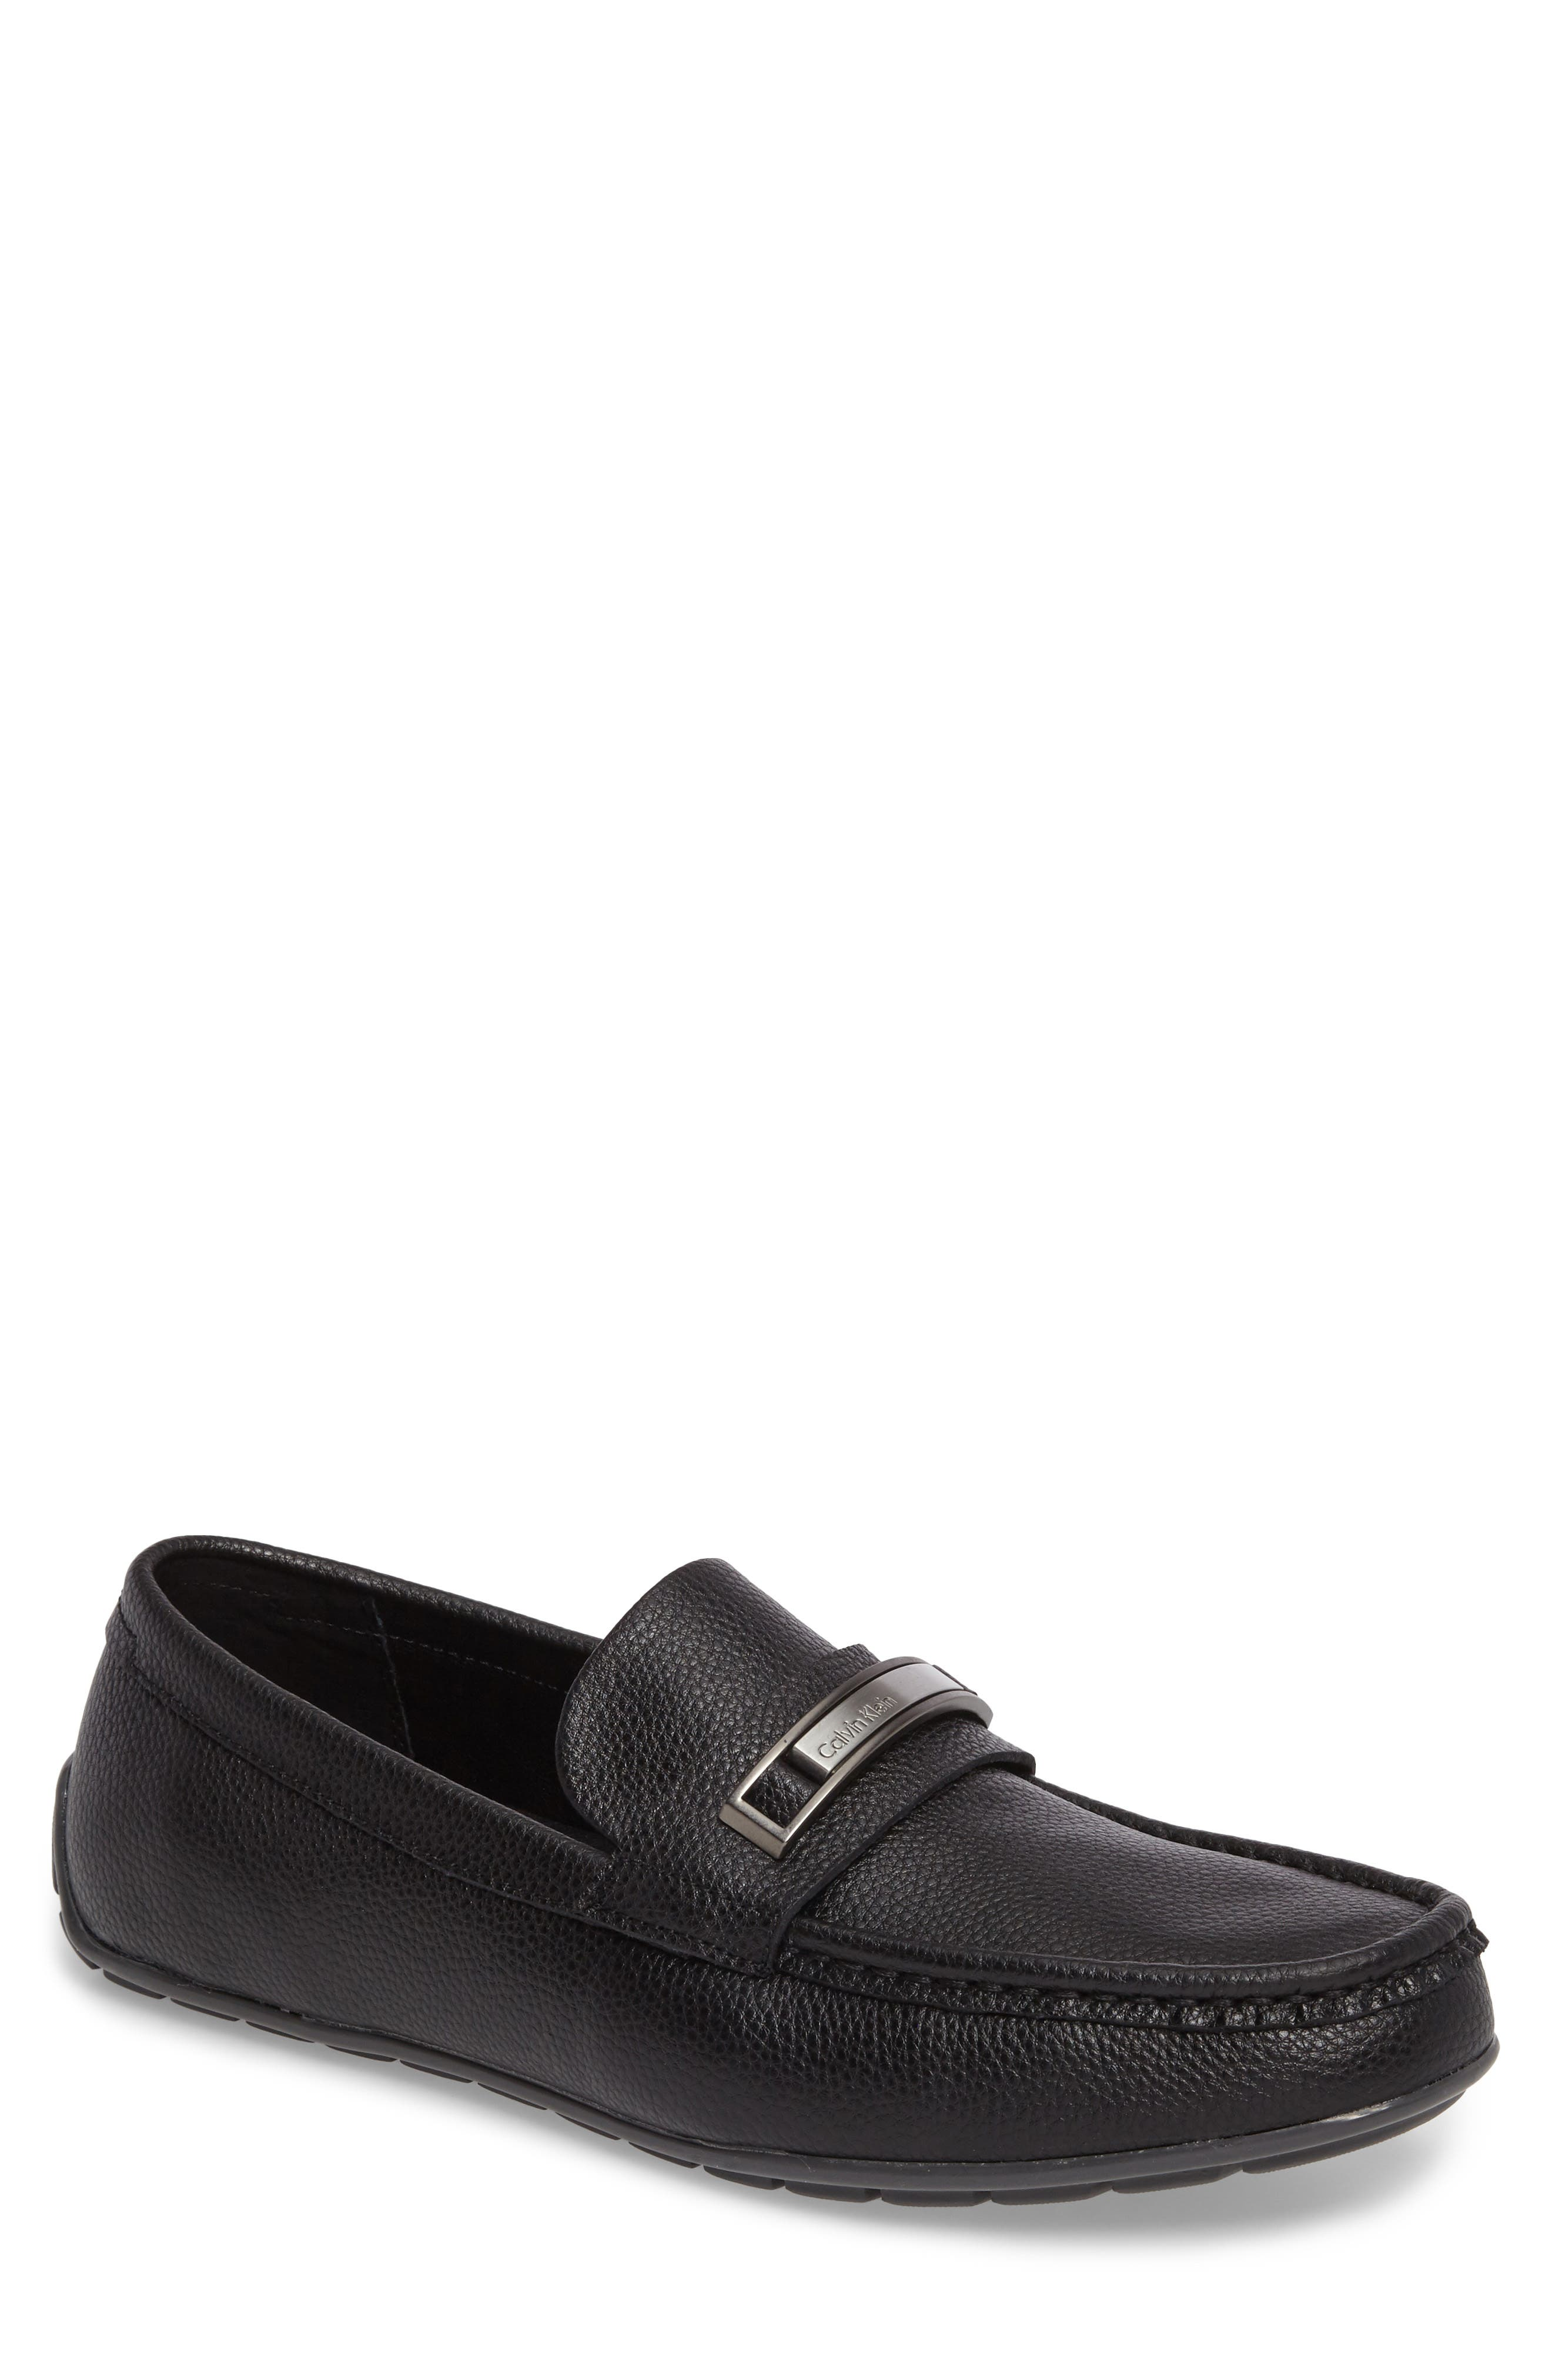 Irving Driving Loafer,                             Main thumbnail 1, color,